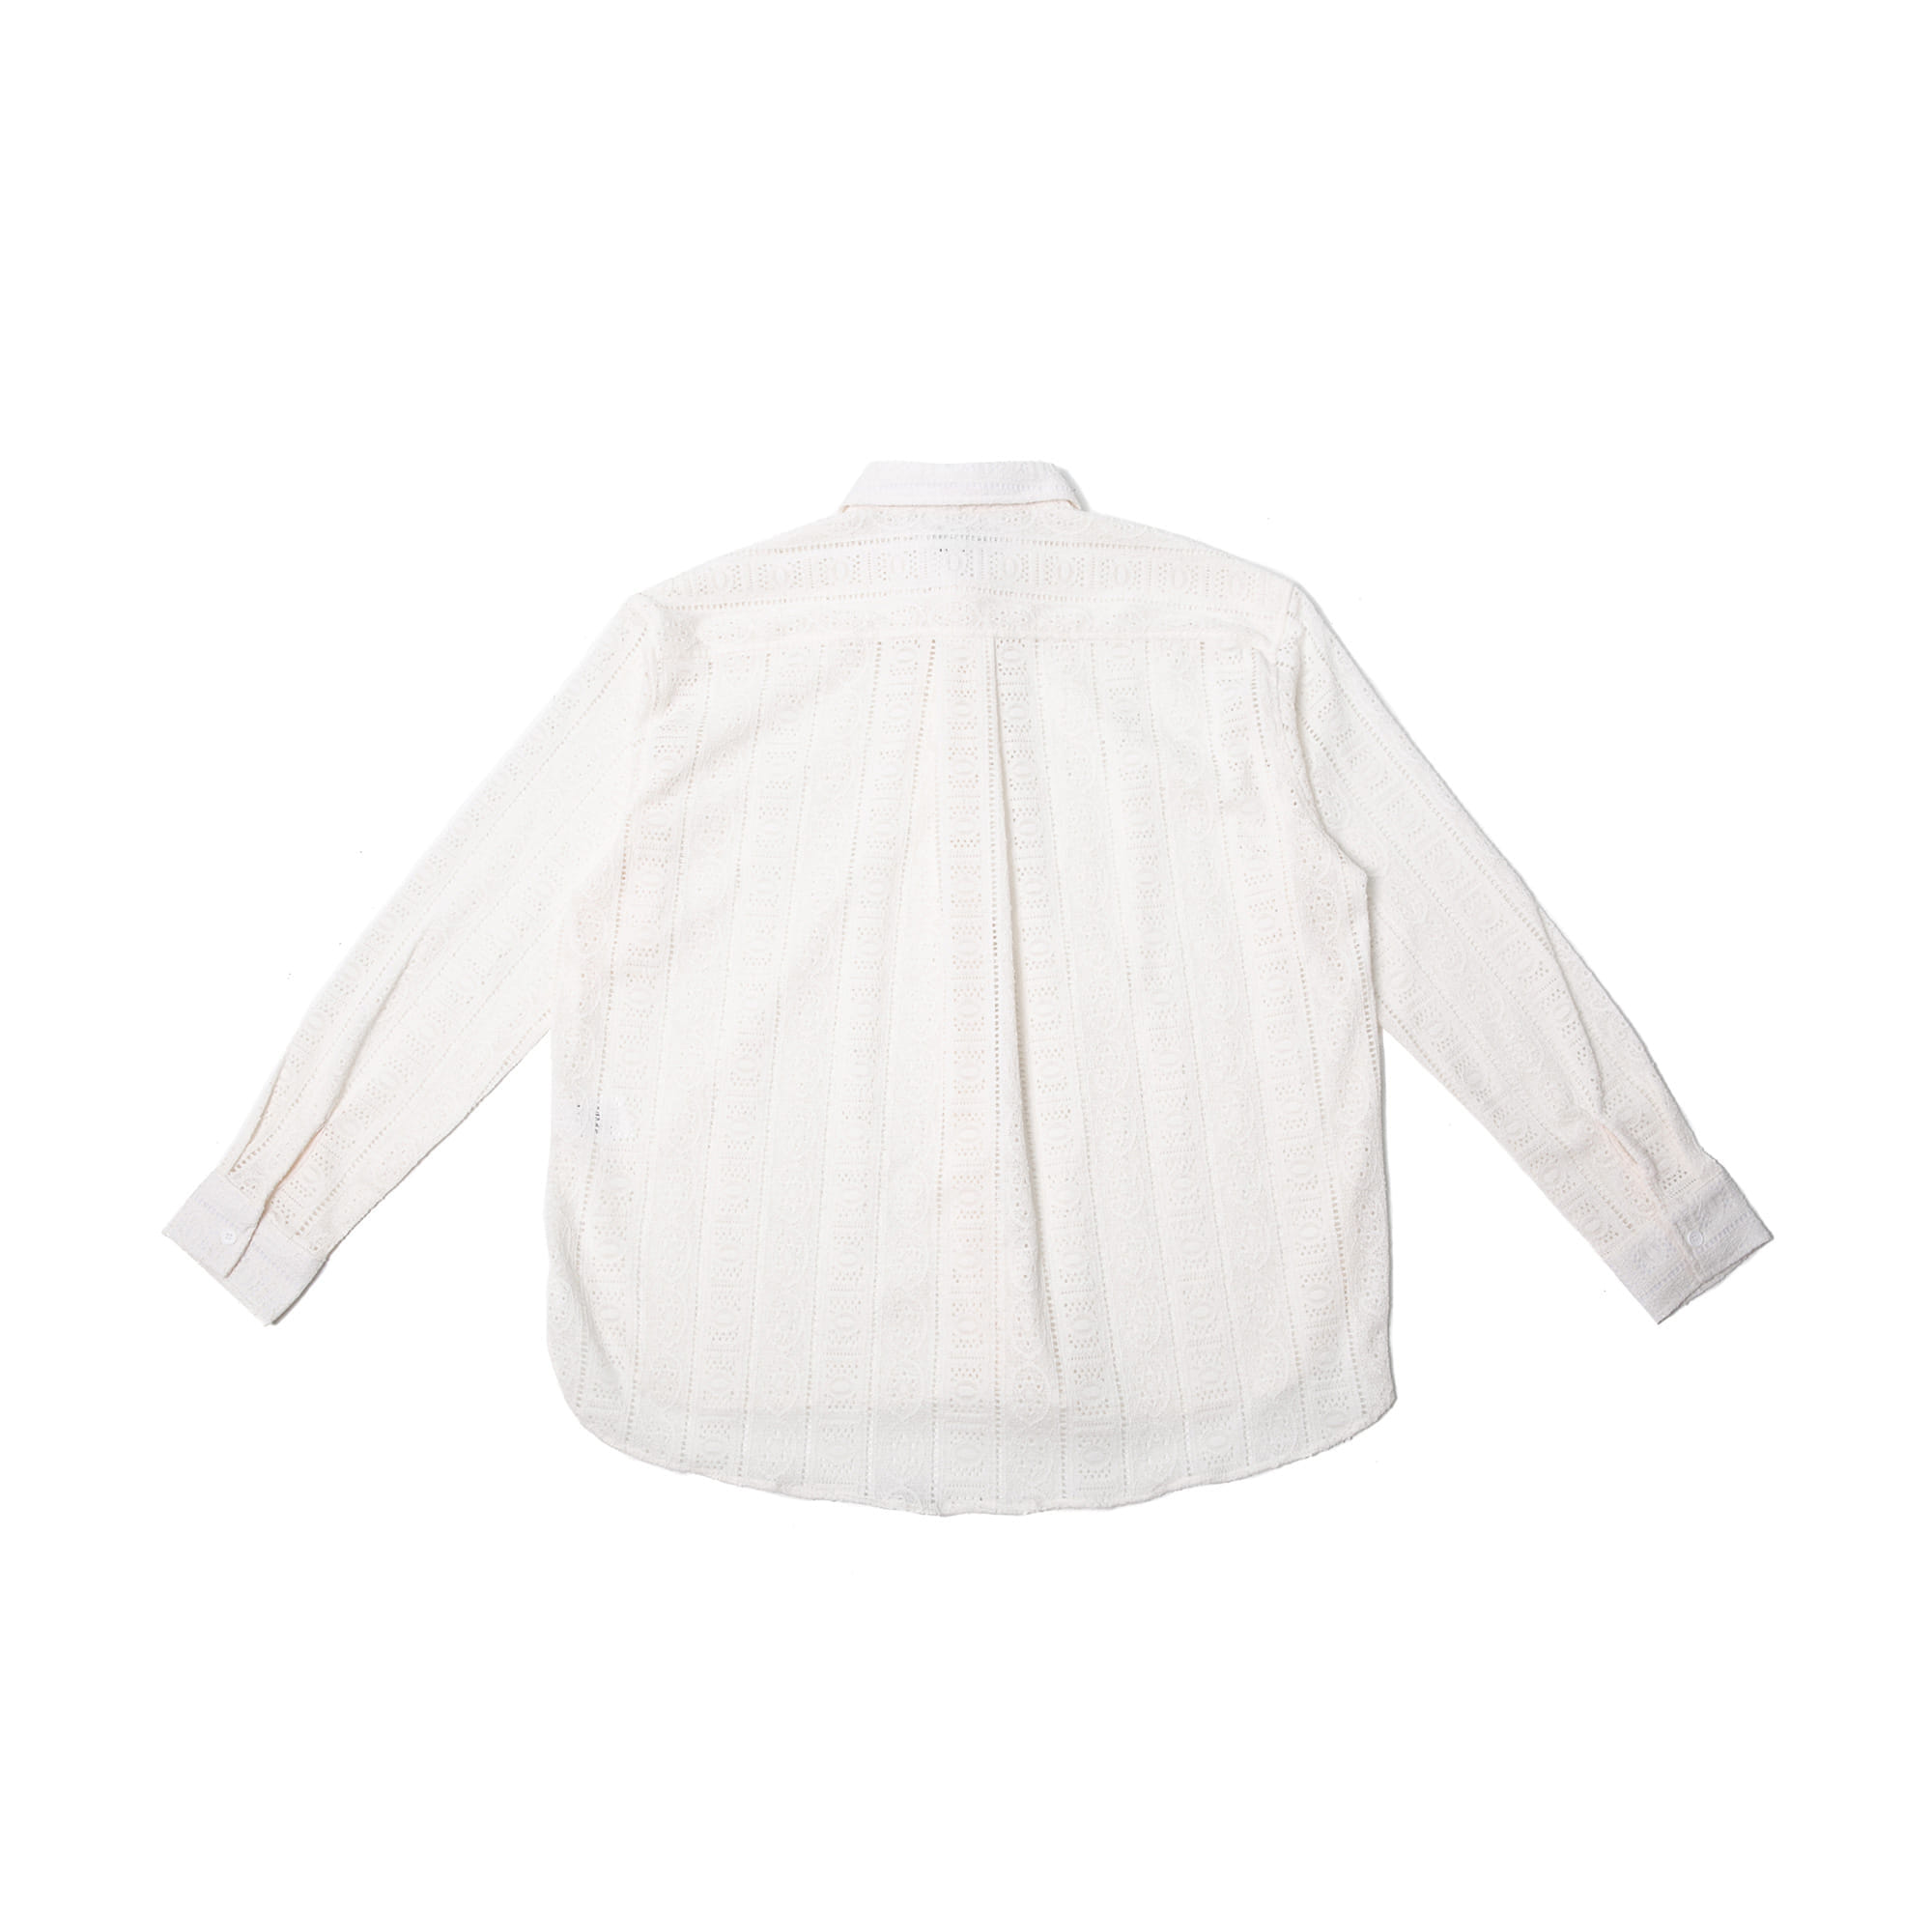 Lace Over Shirt - White